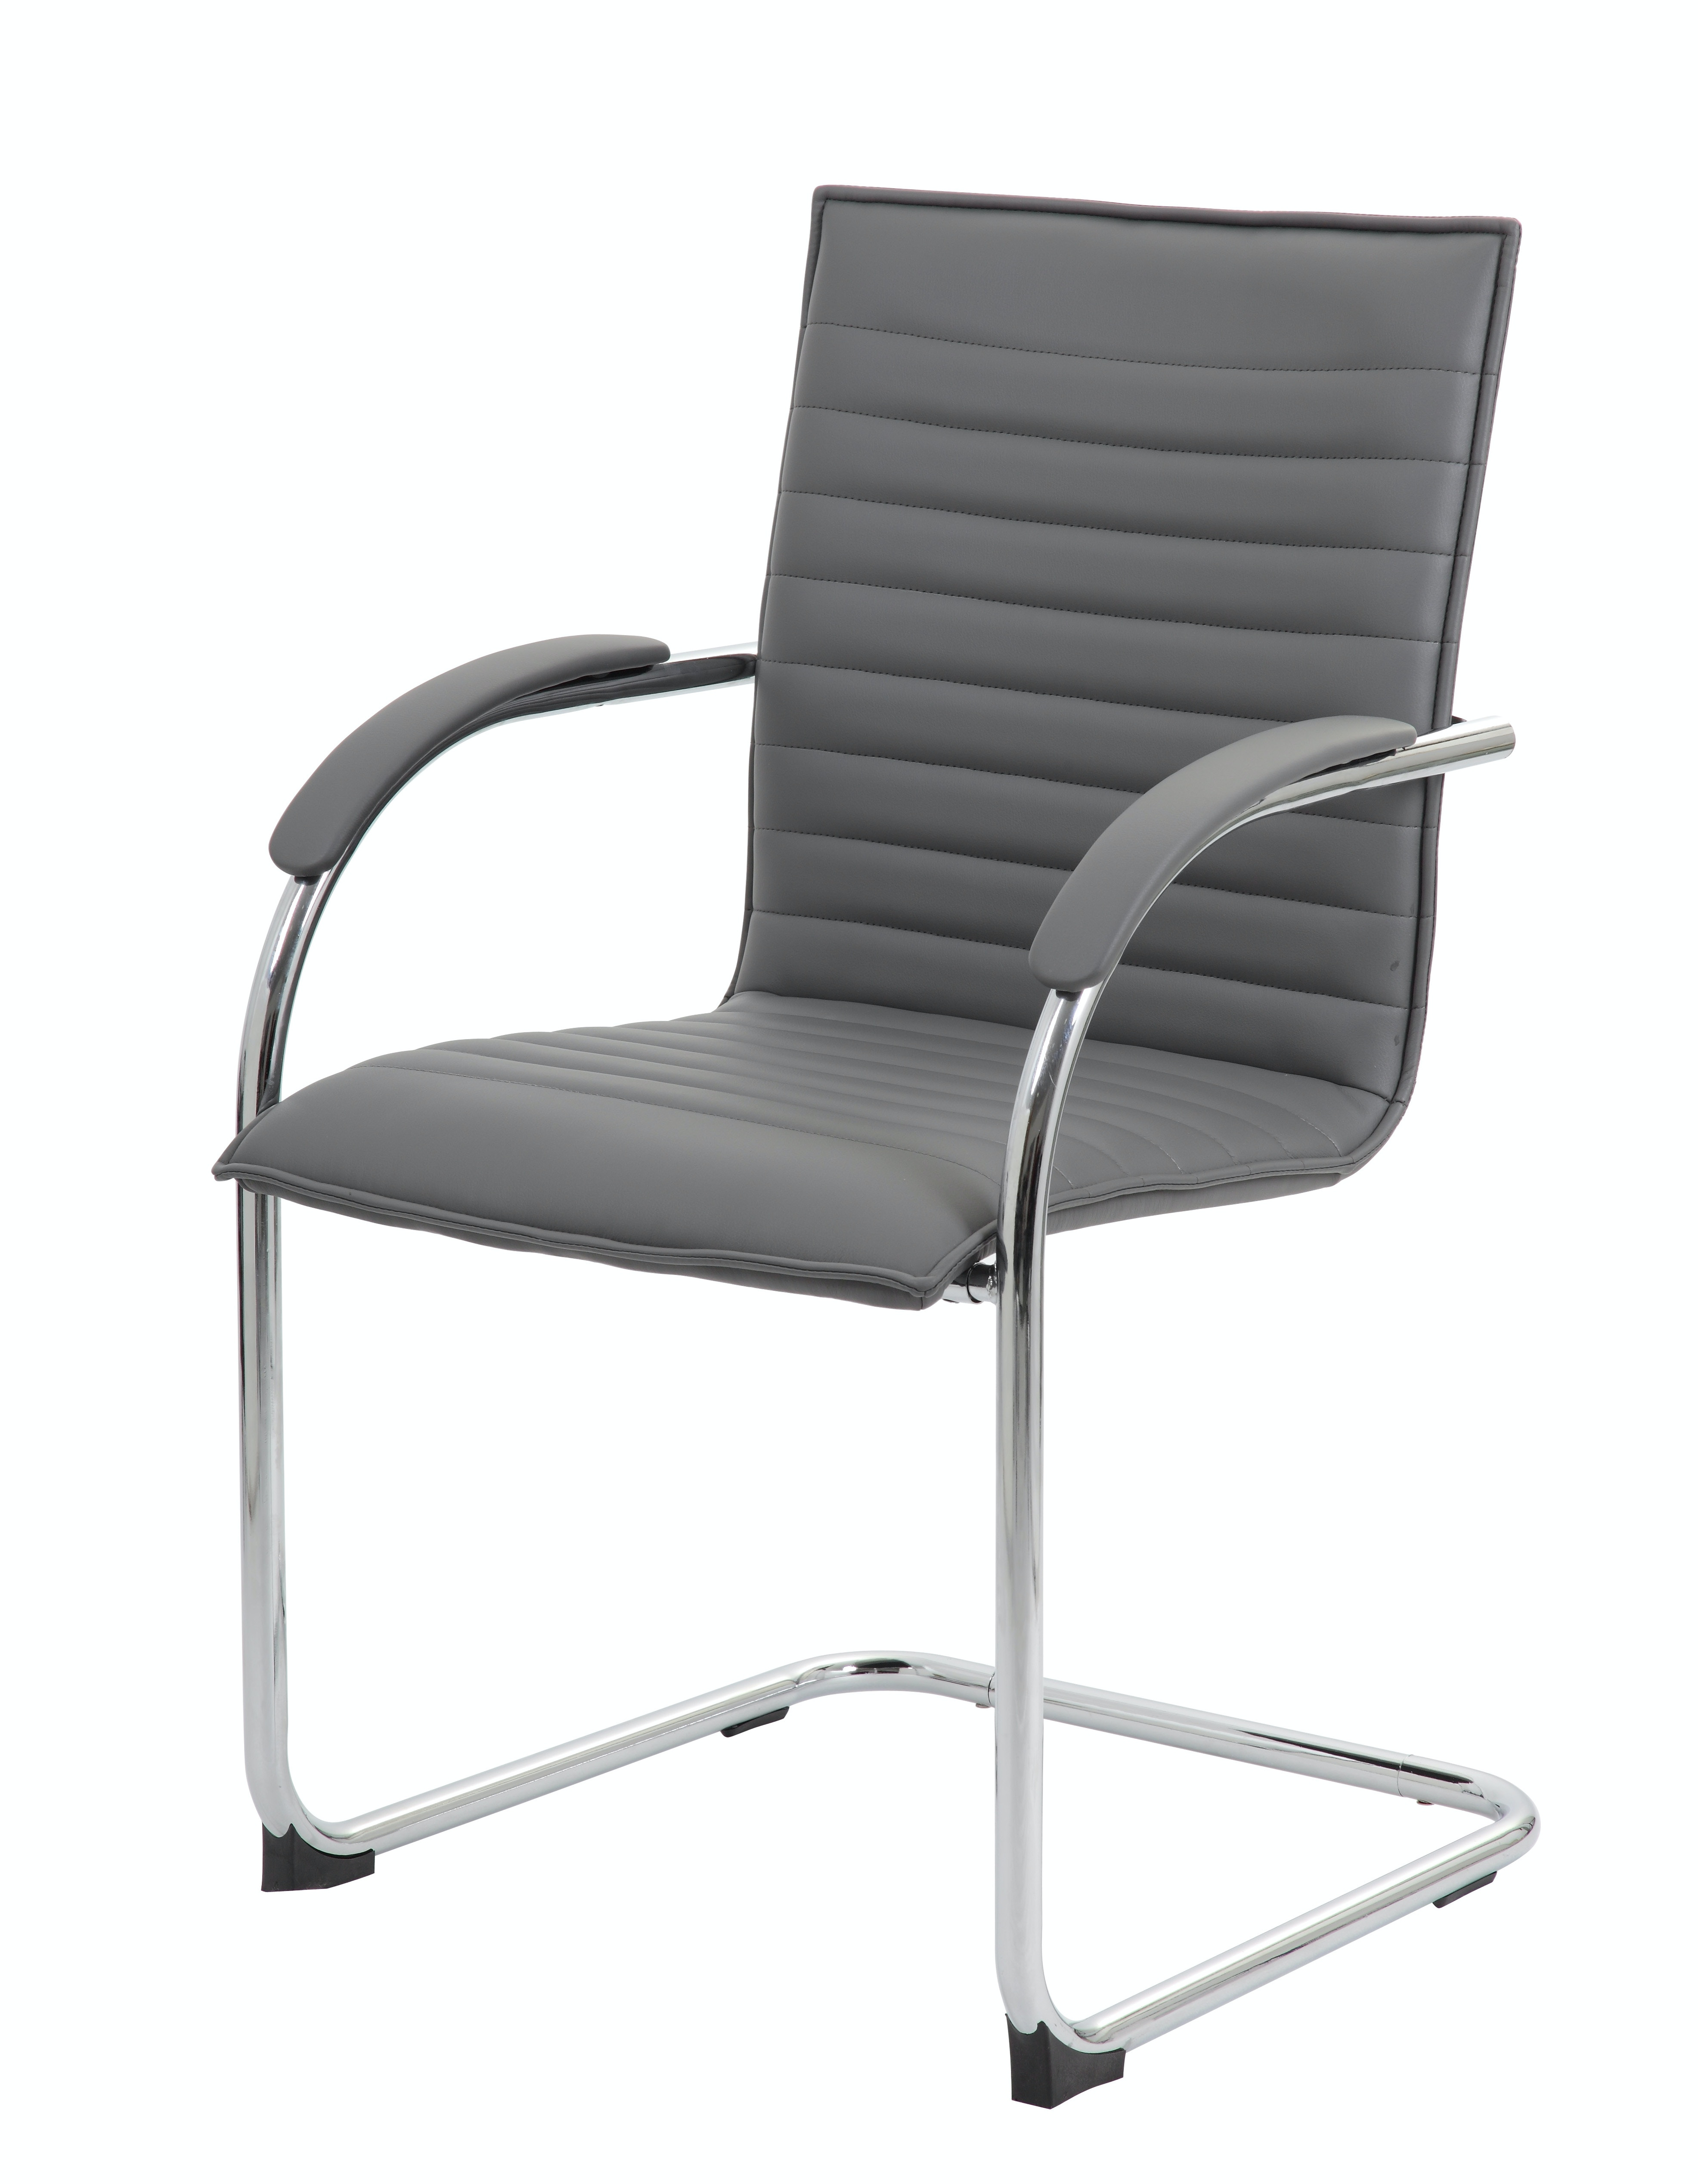 office side chair adams plastic adirondack chairs lowes presidential seating home boss chrome frame grey vinyl 2 pack b9536 gy